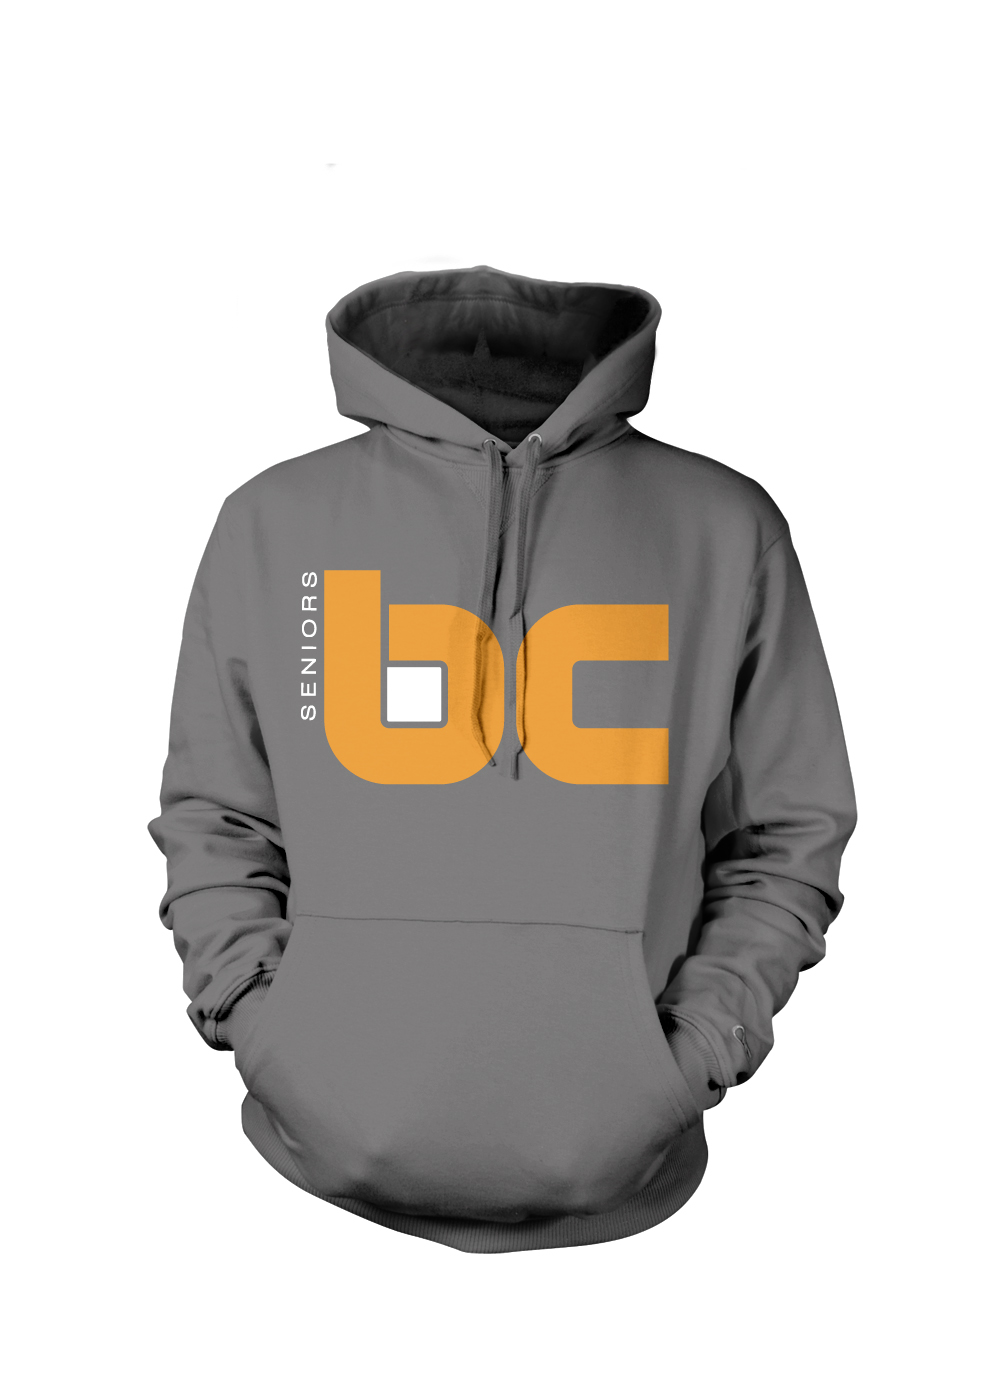 Byron Center high school senior graduation hoodie designed by Xoil Design